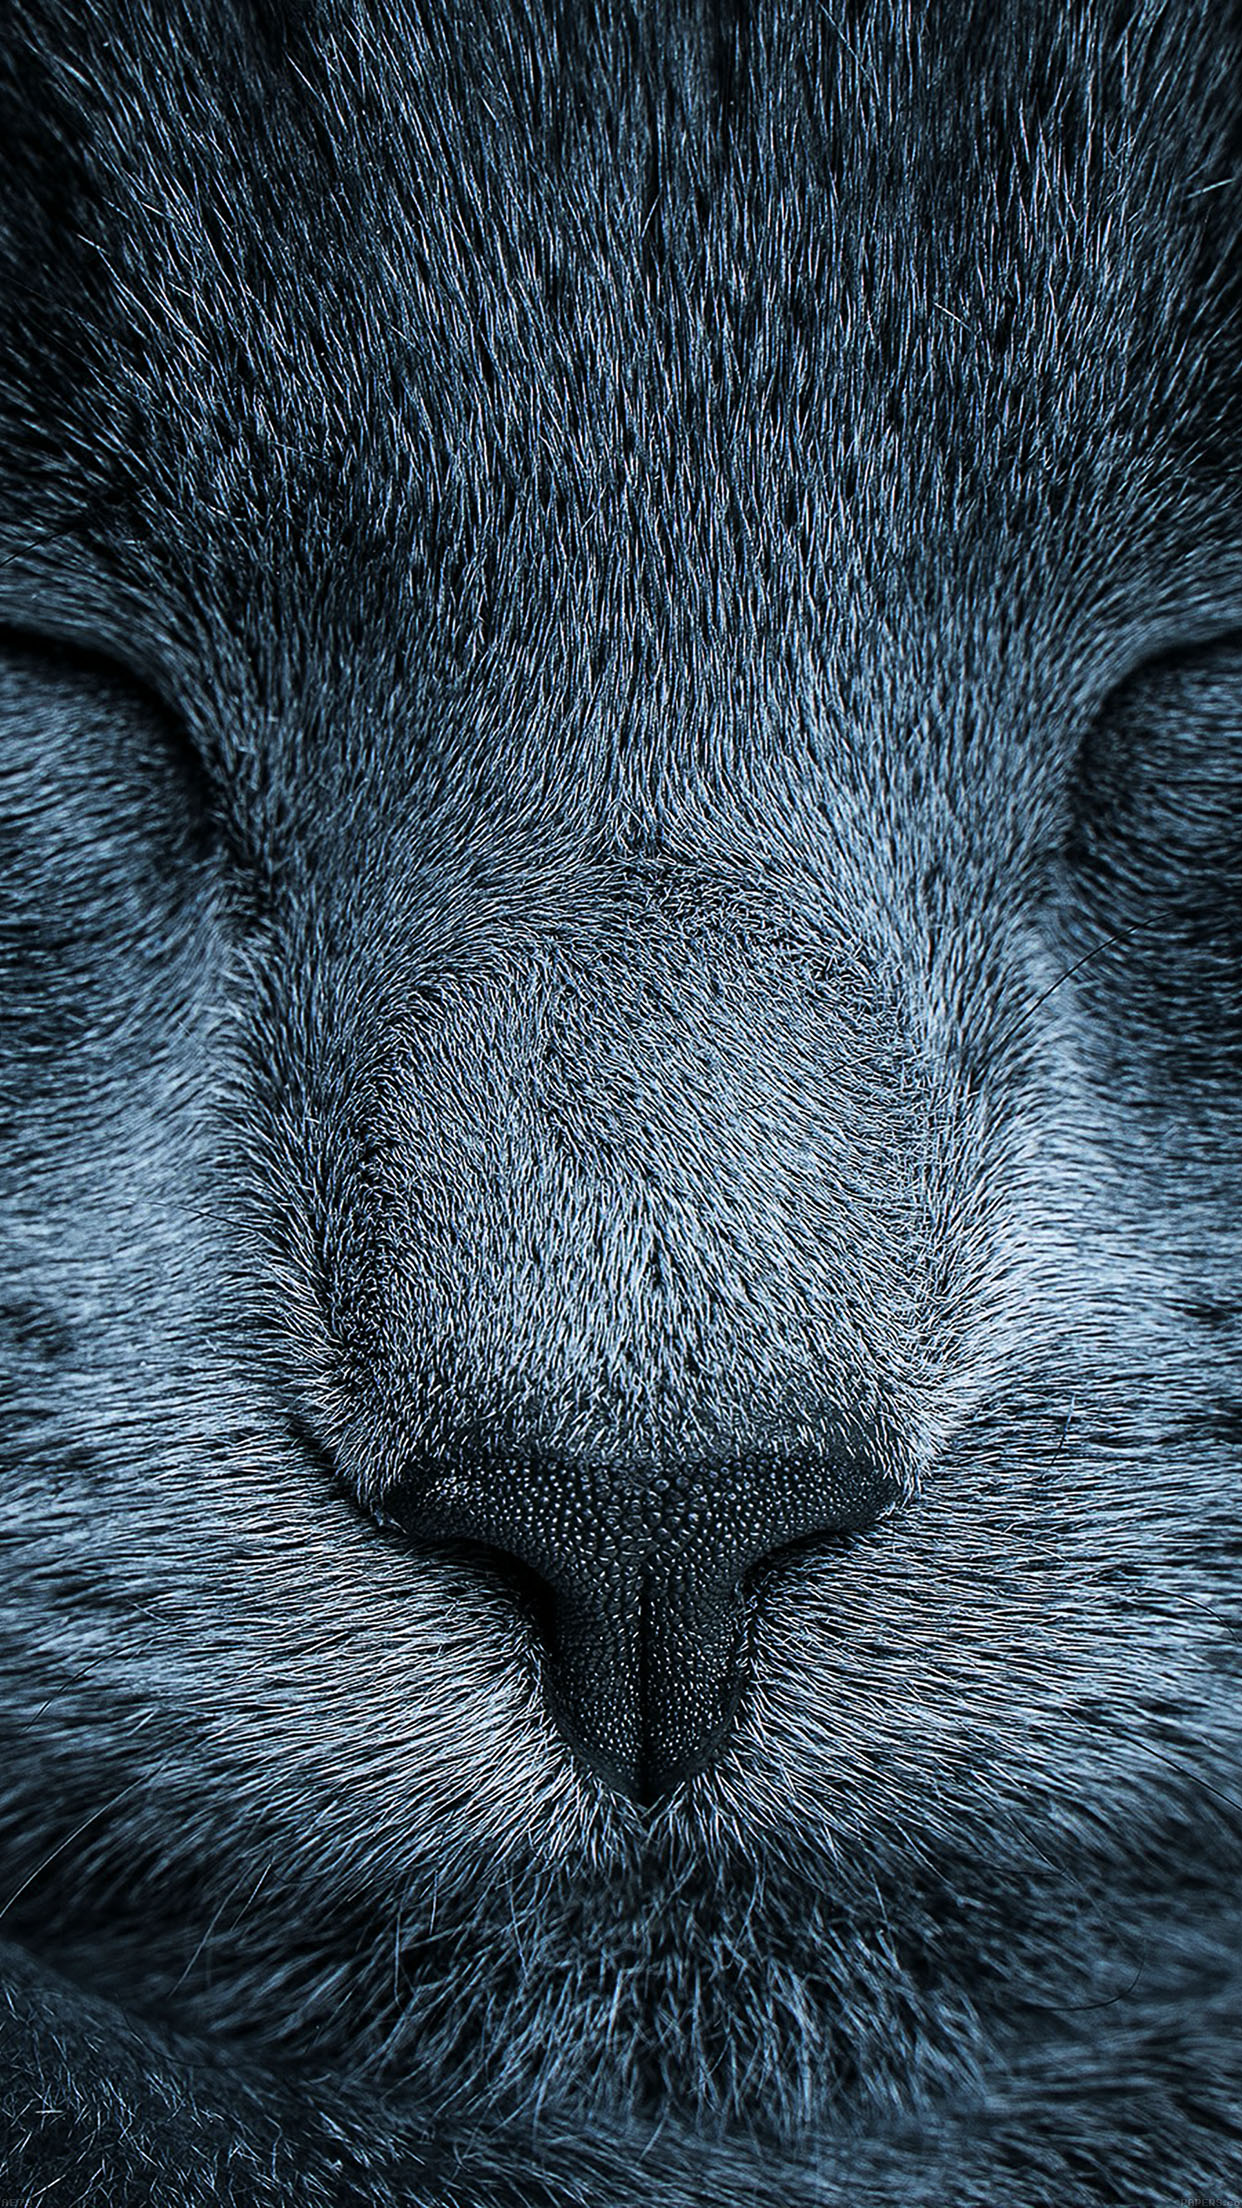 Sleeping Blue Cat Zoom Nature Android Wallpaper